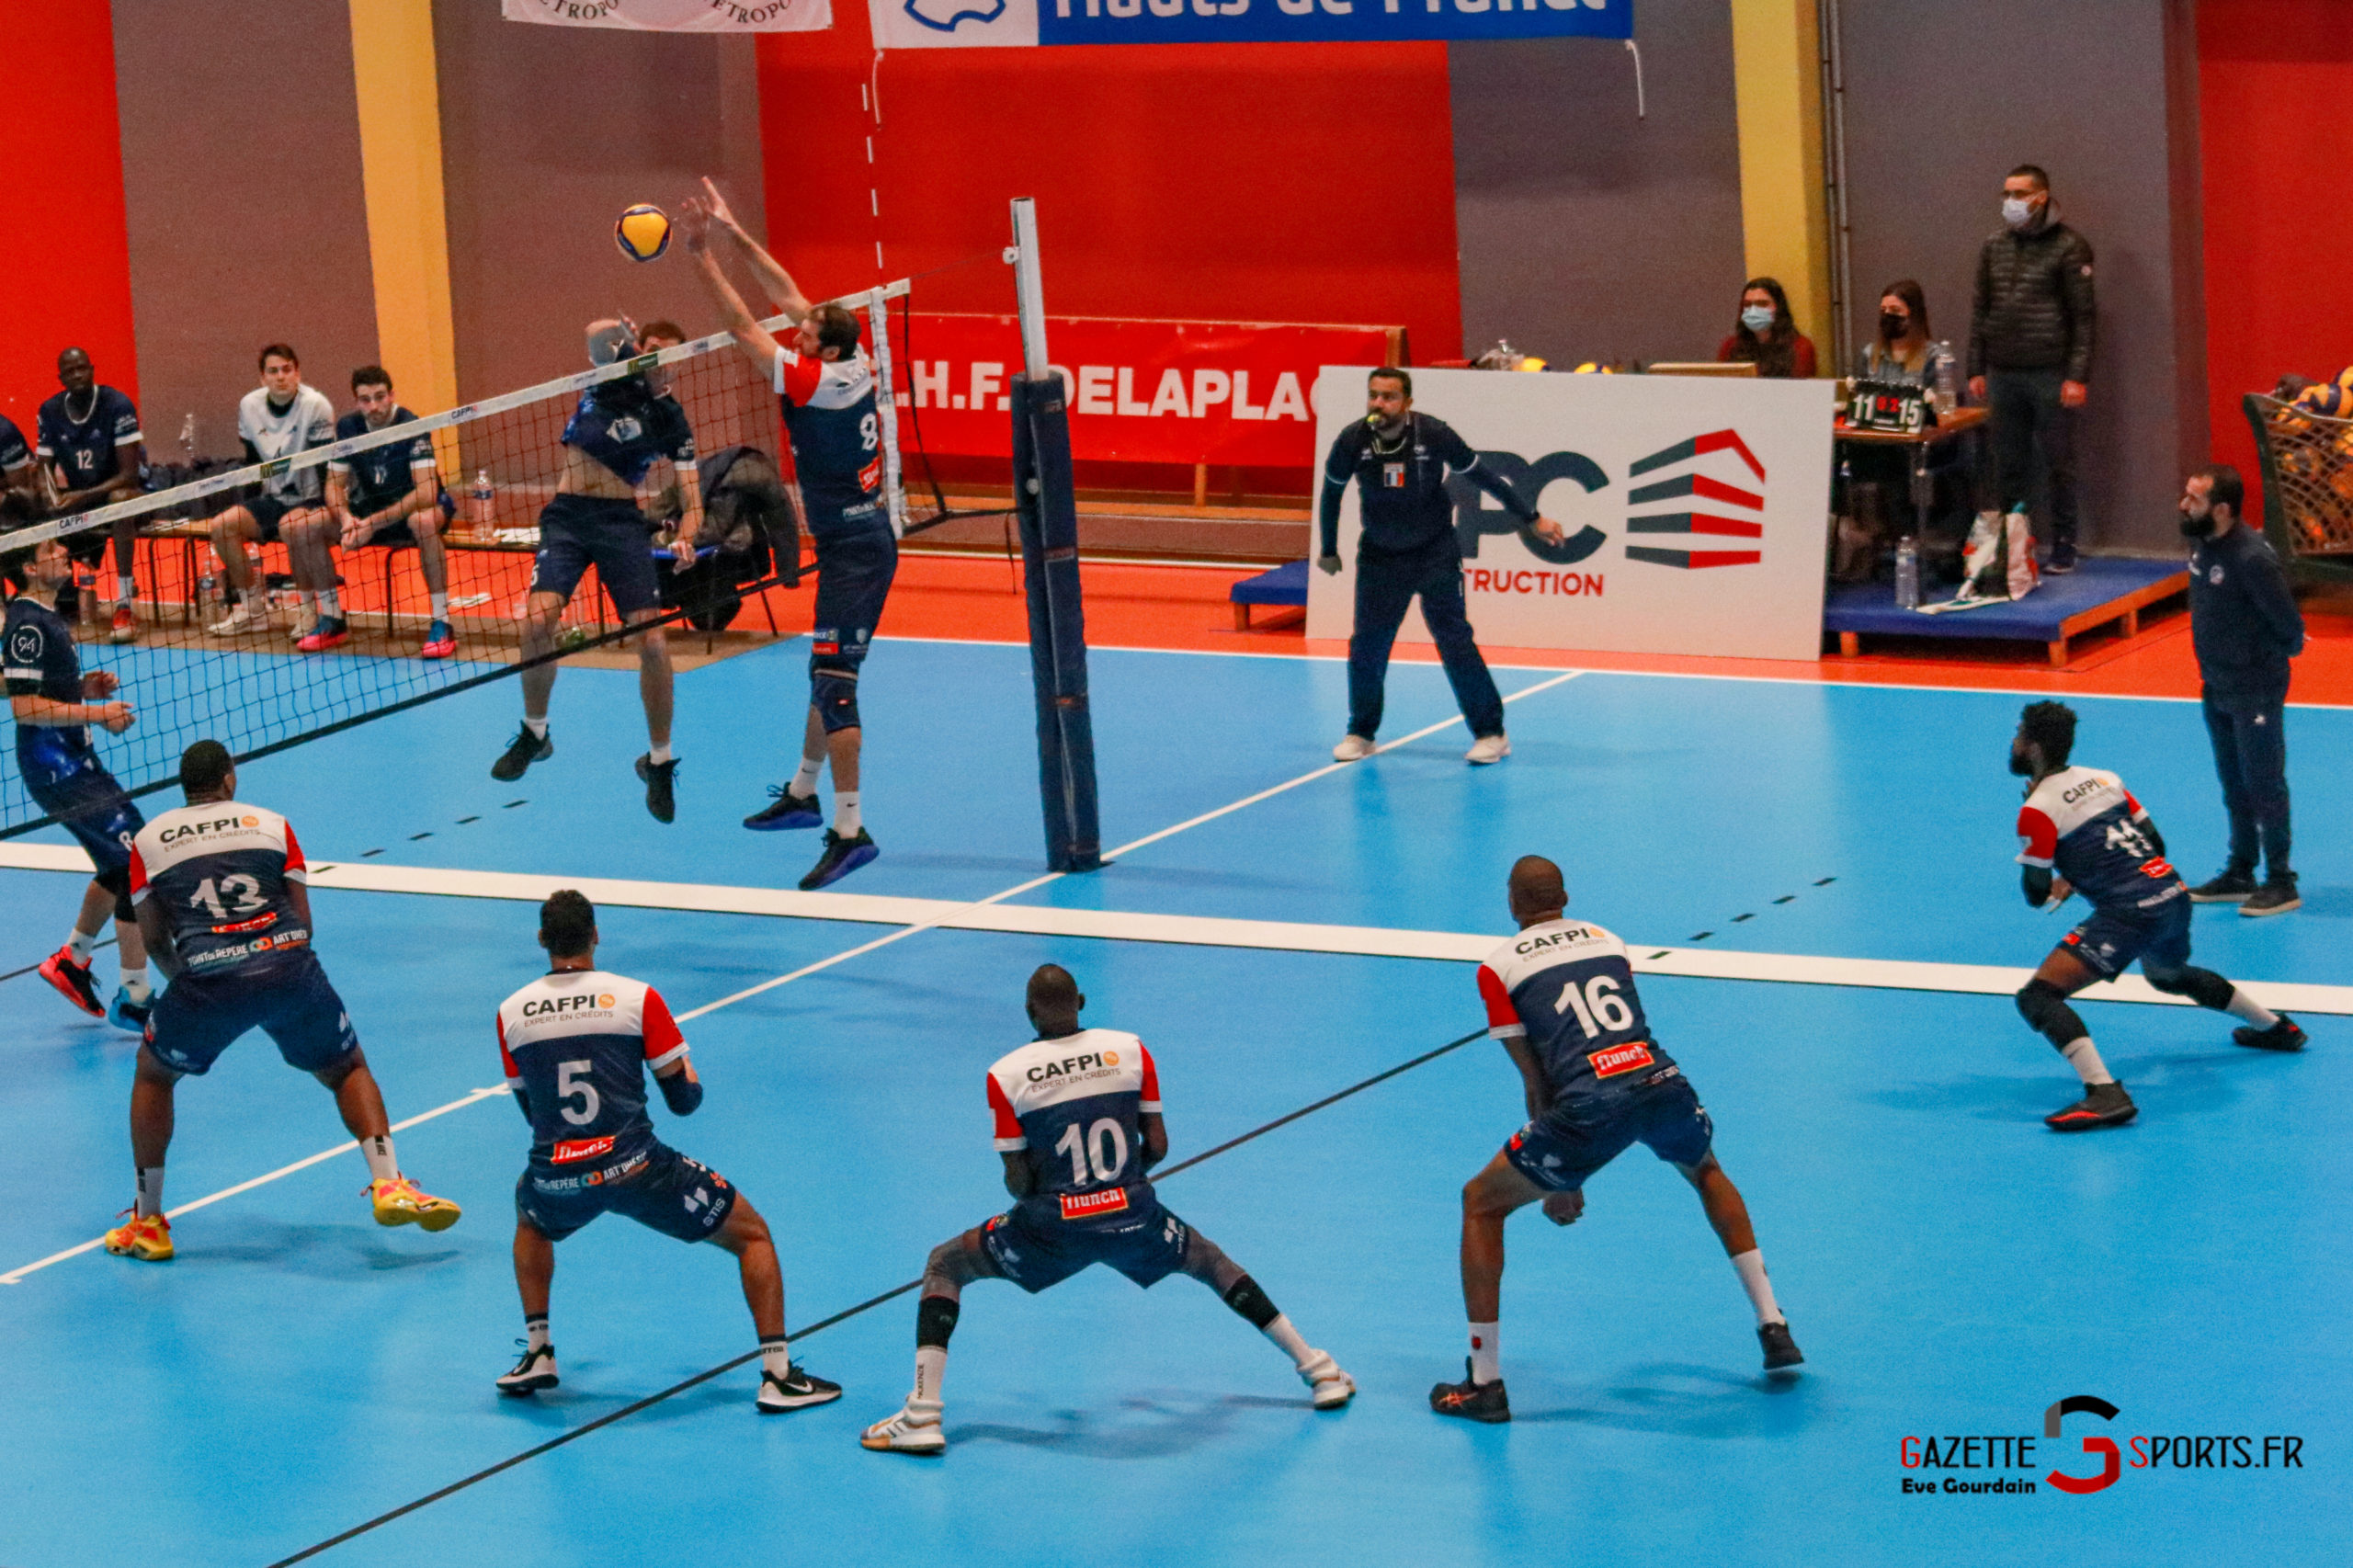 VOLLEYBALL: And now straighten the shifting bar